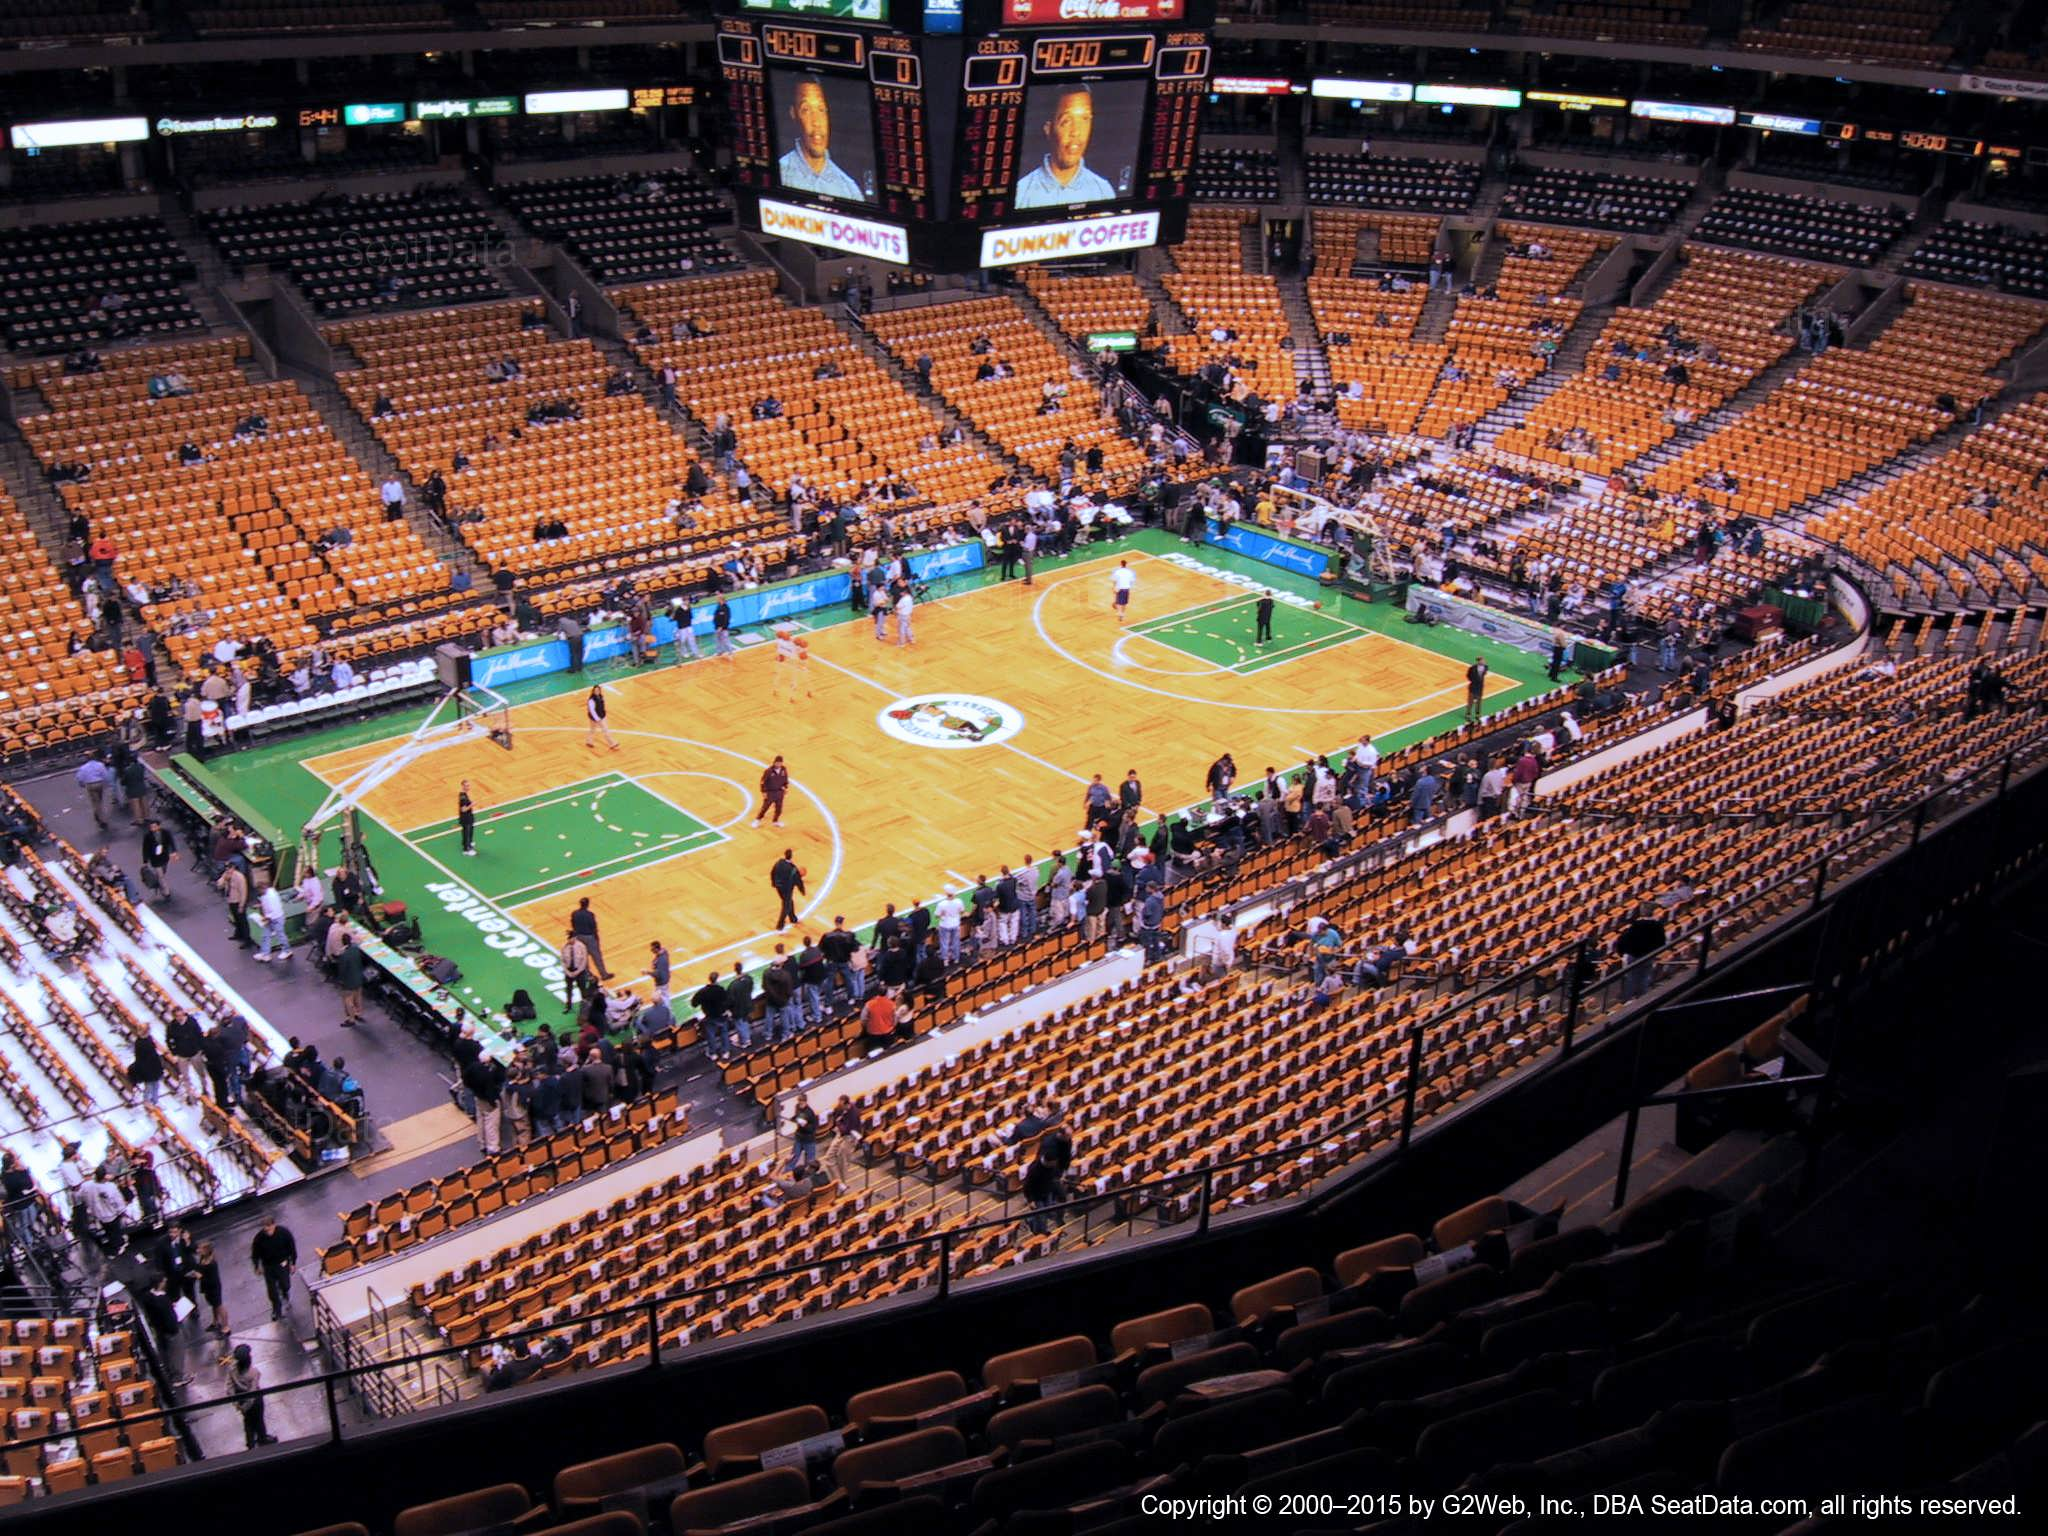 Td Garden Section 319 Boston Celtics